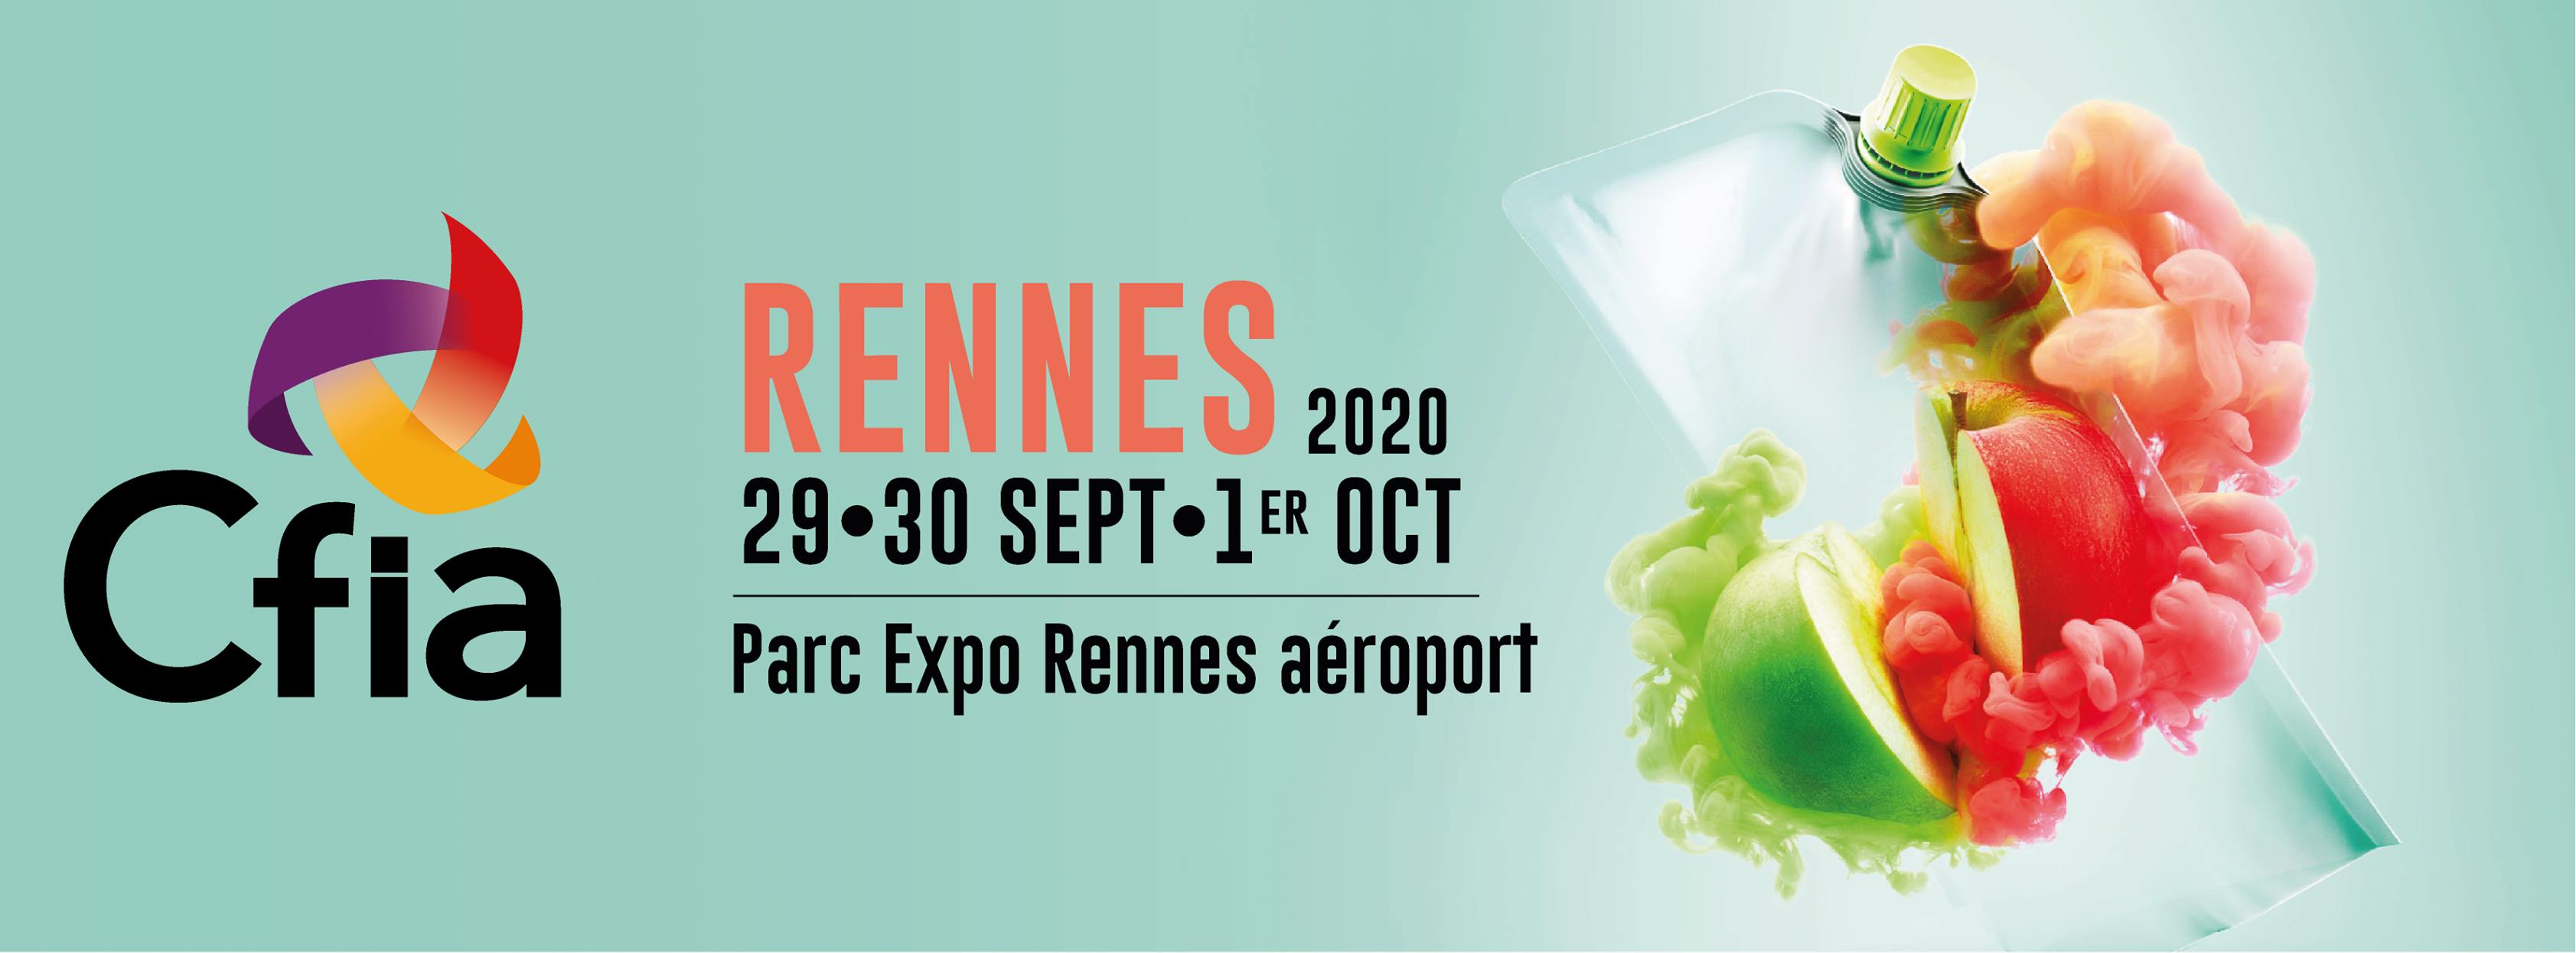 Salon CFIA Rennes 2020